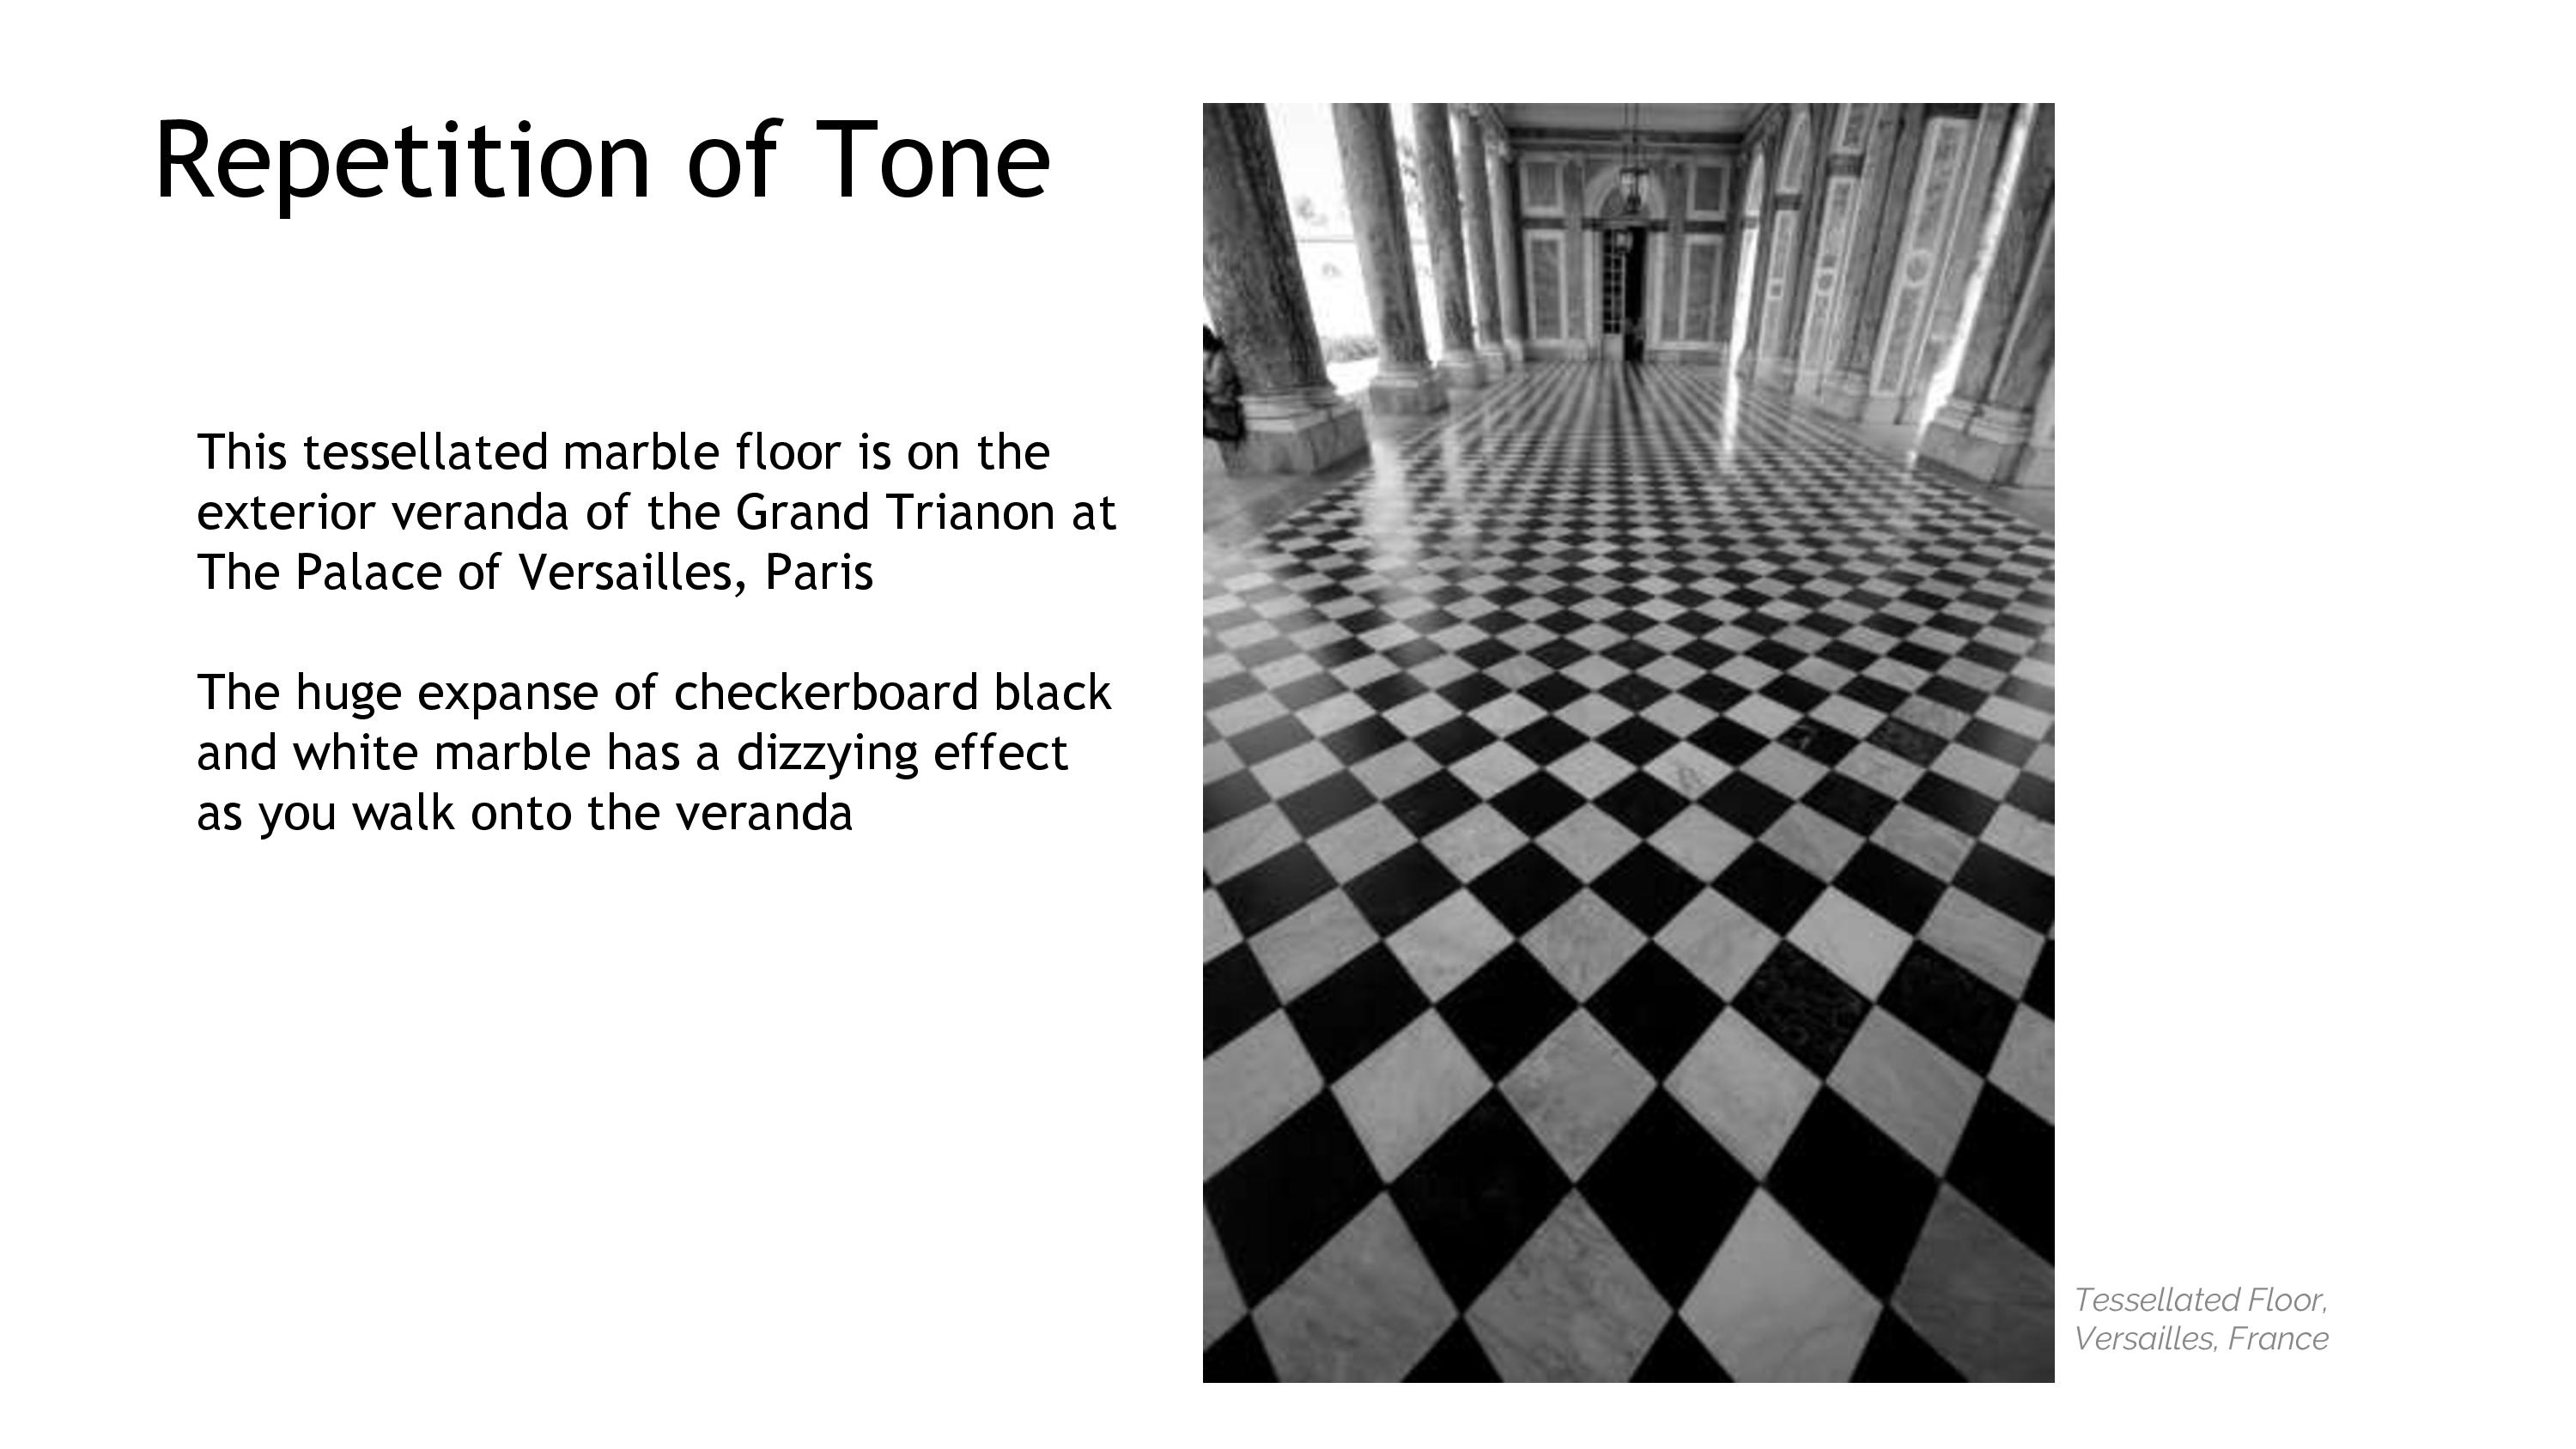 harmony-pattern-size-scale-proportion-page-020